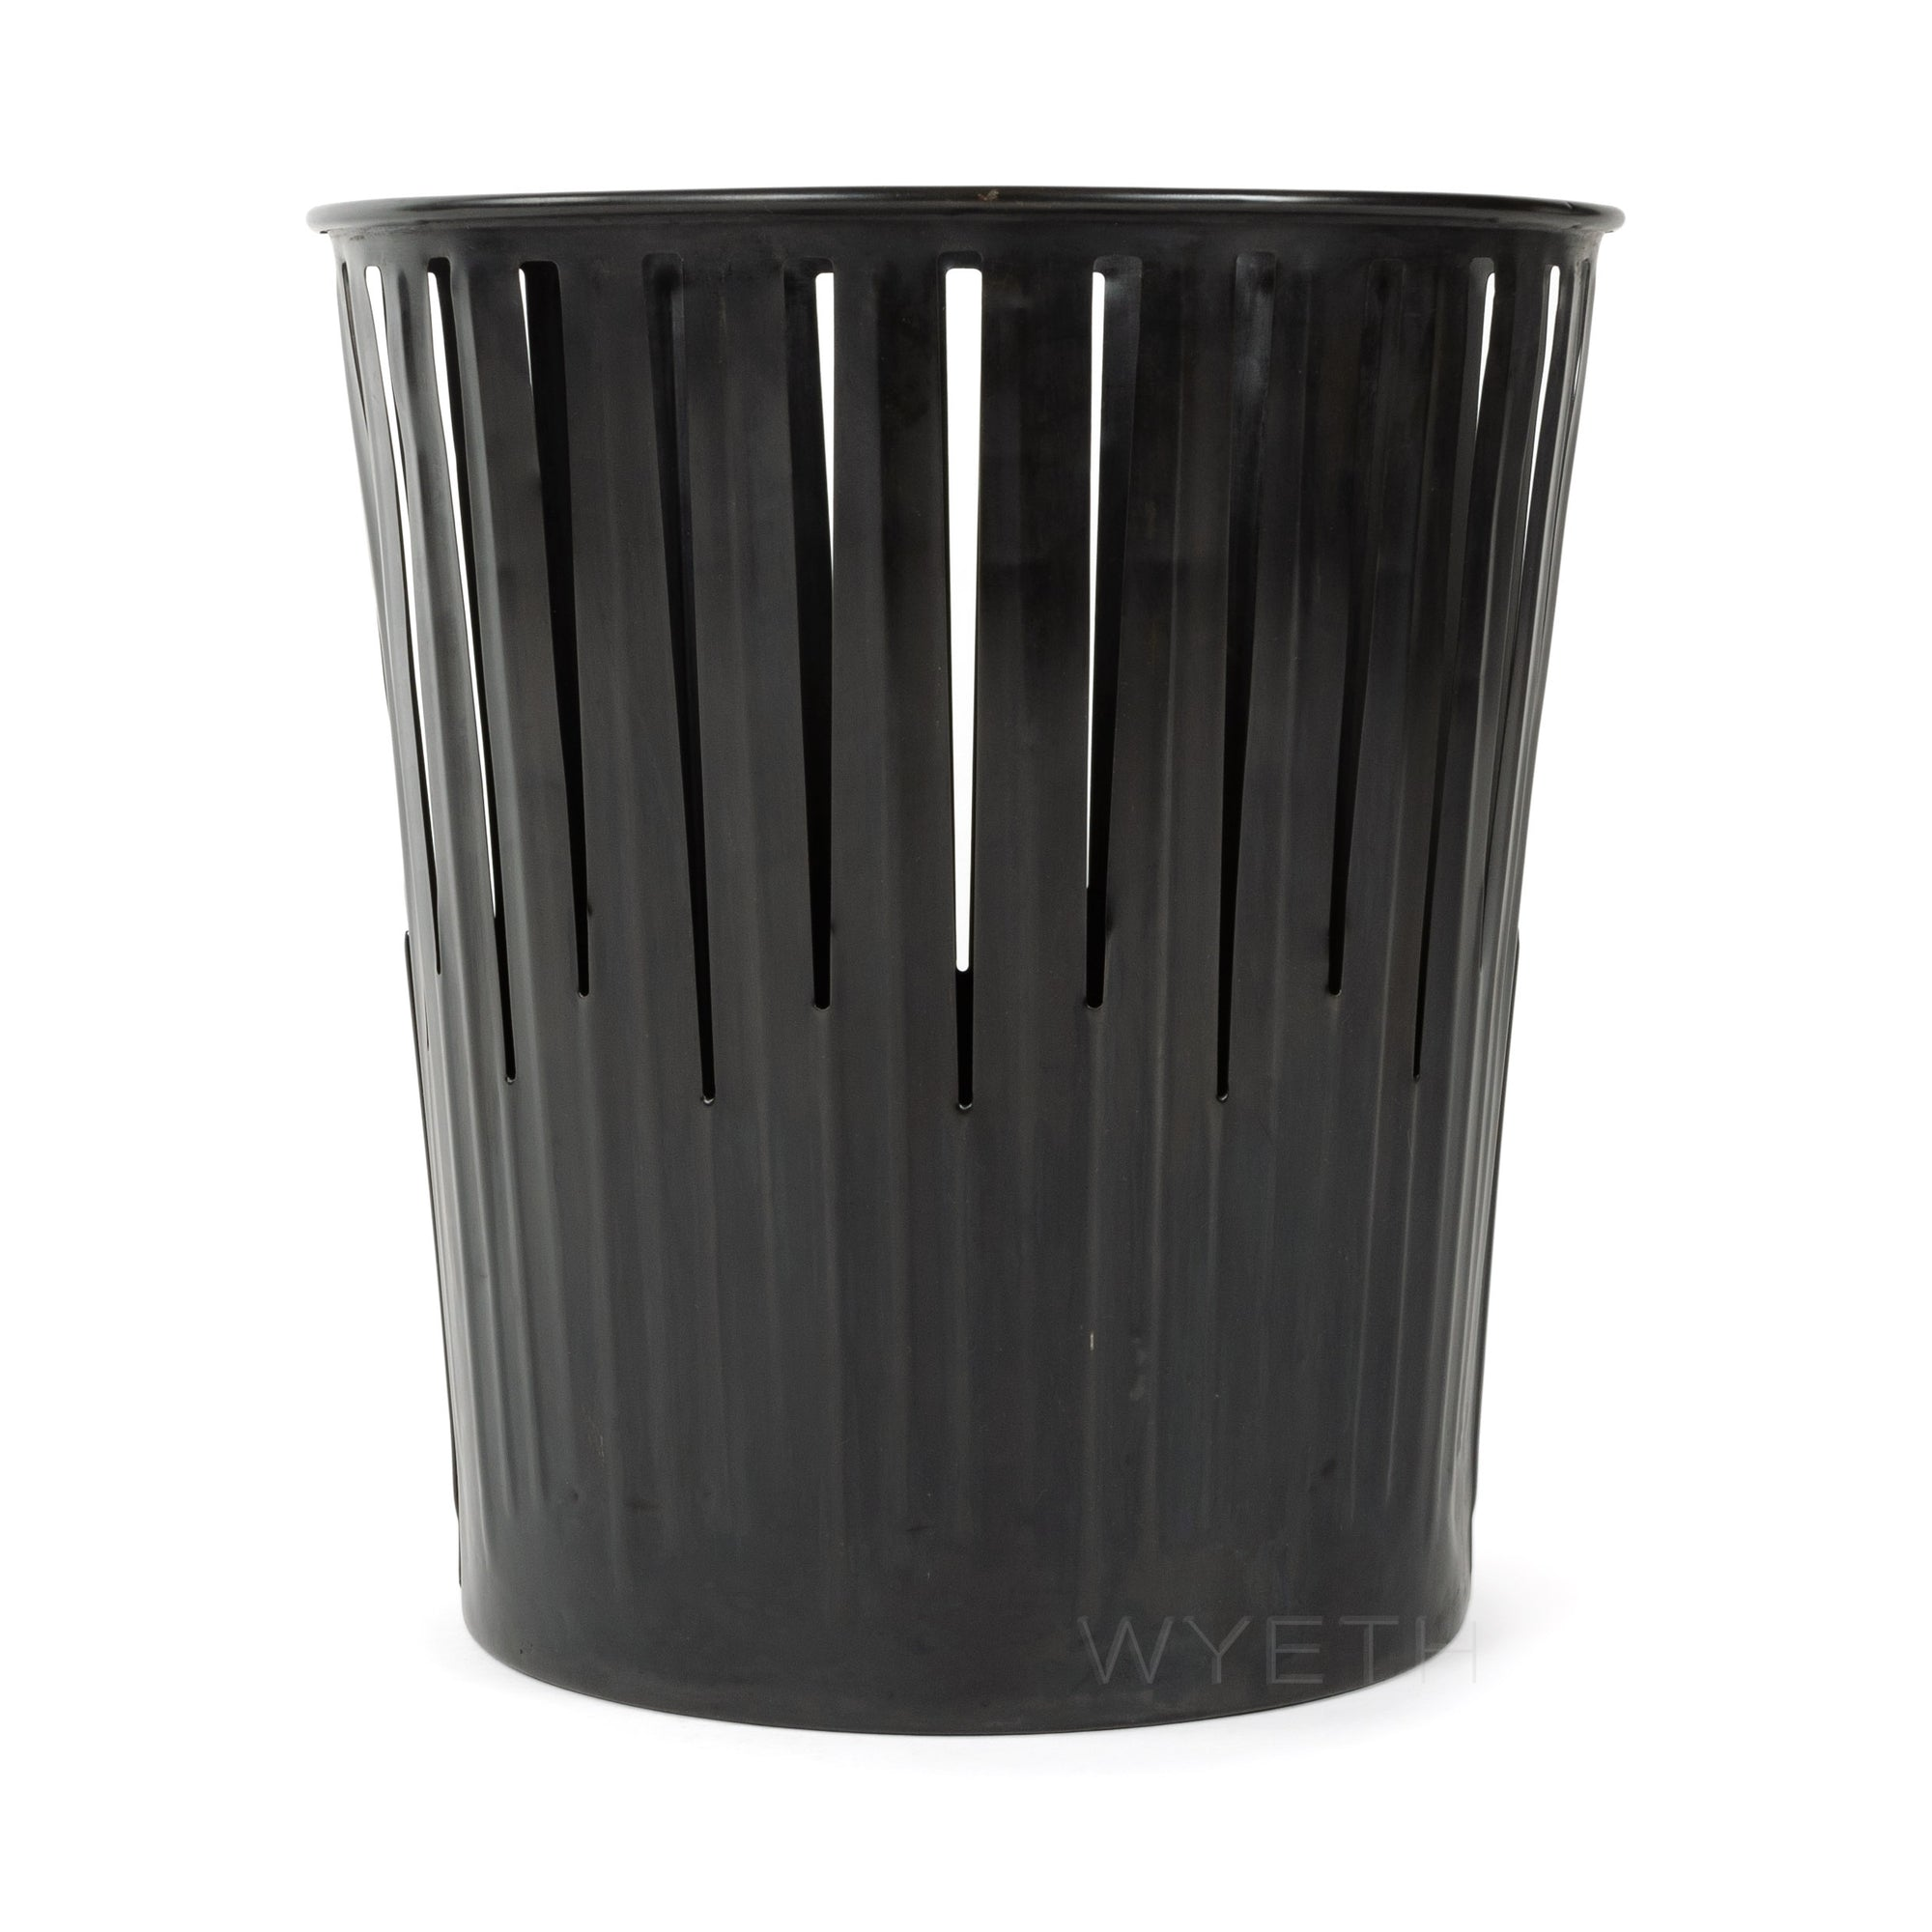 Industrial Waste Basket - Accessories - ----- WYETH